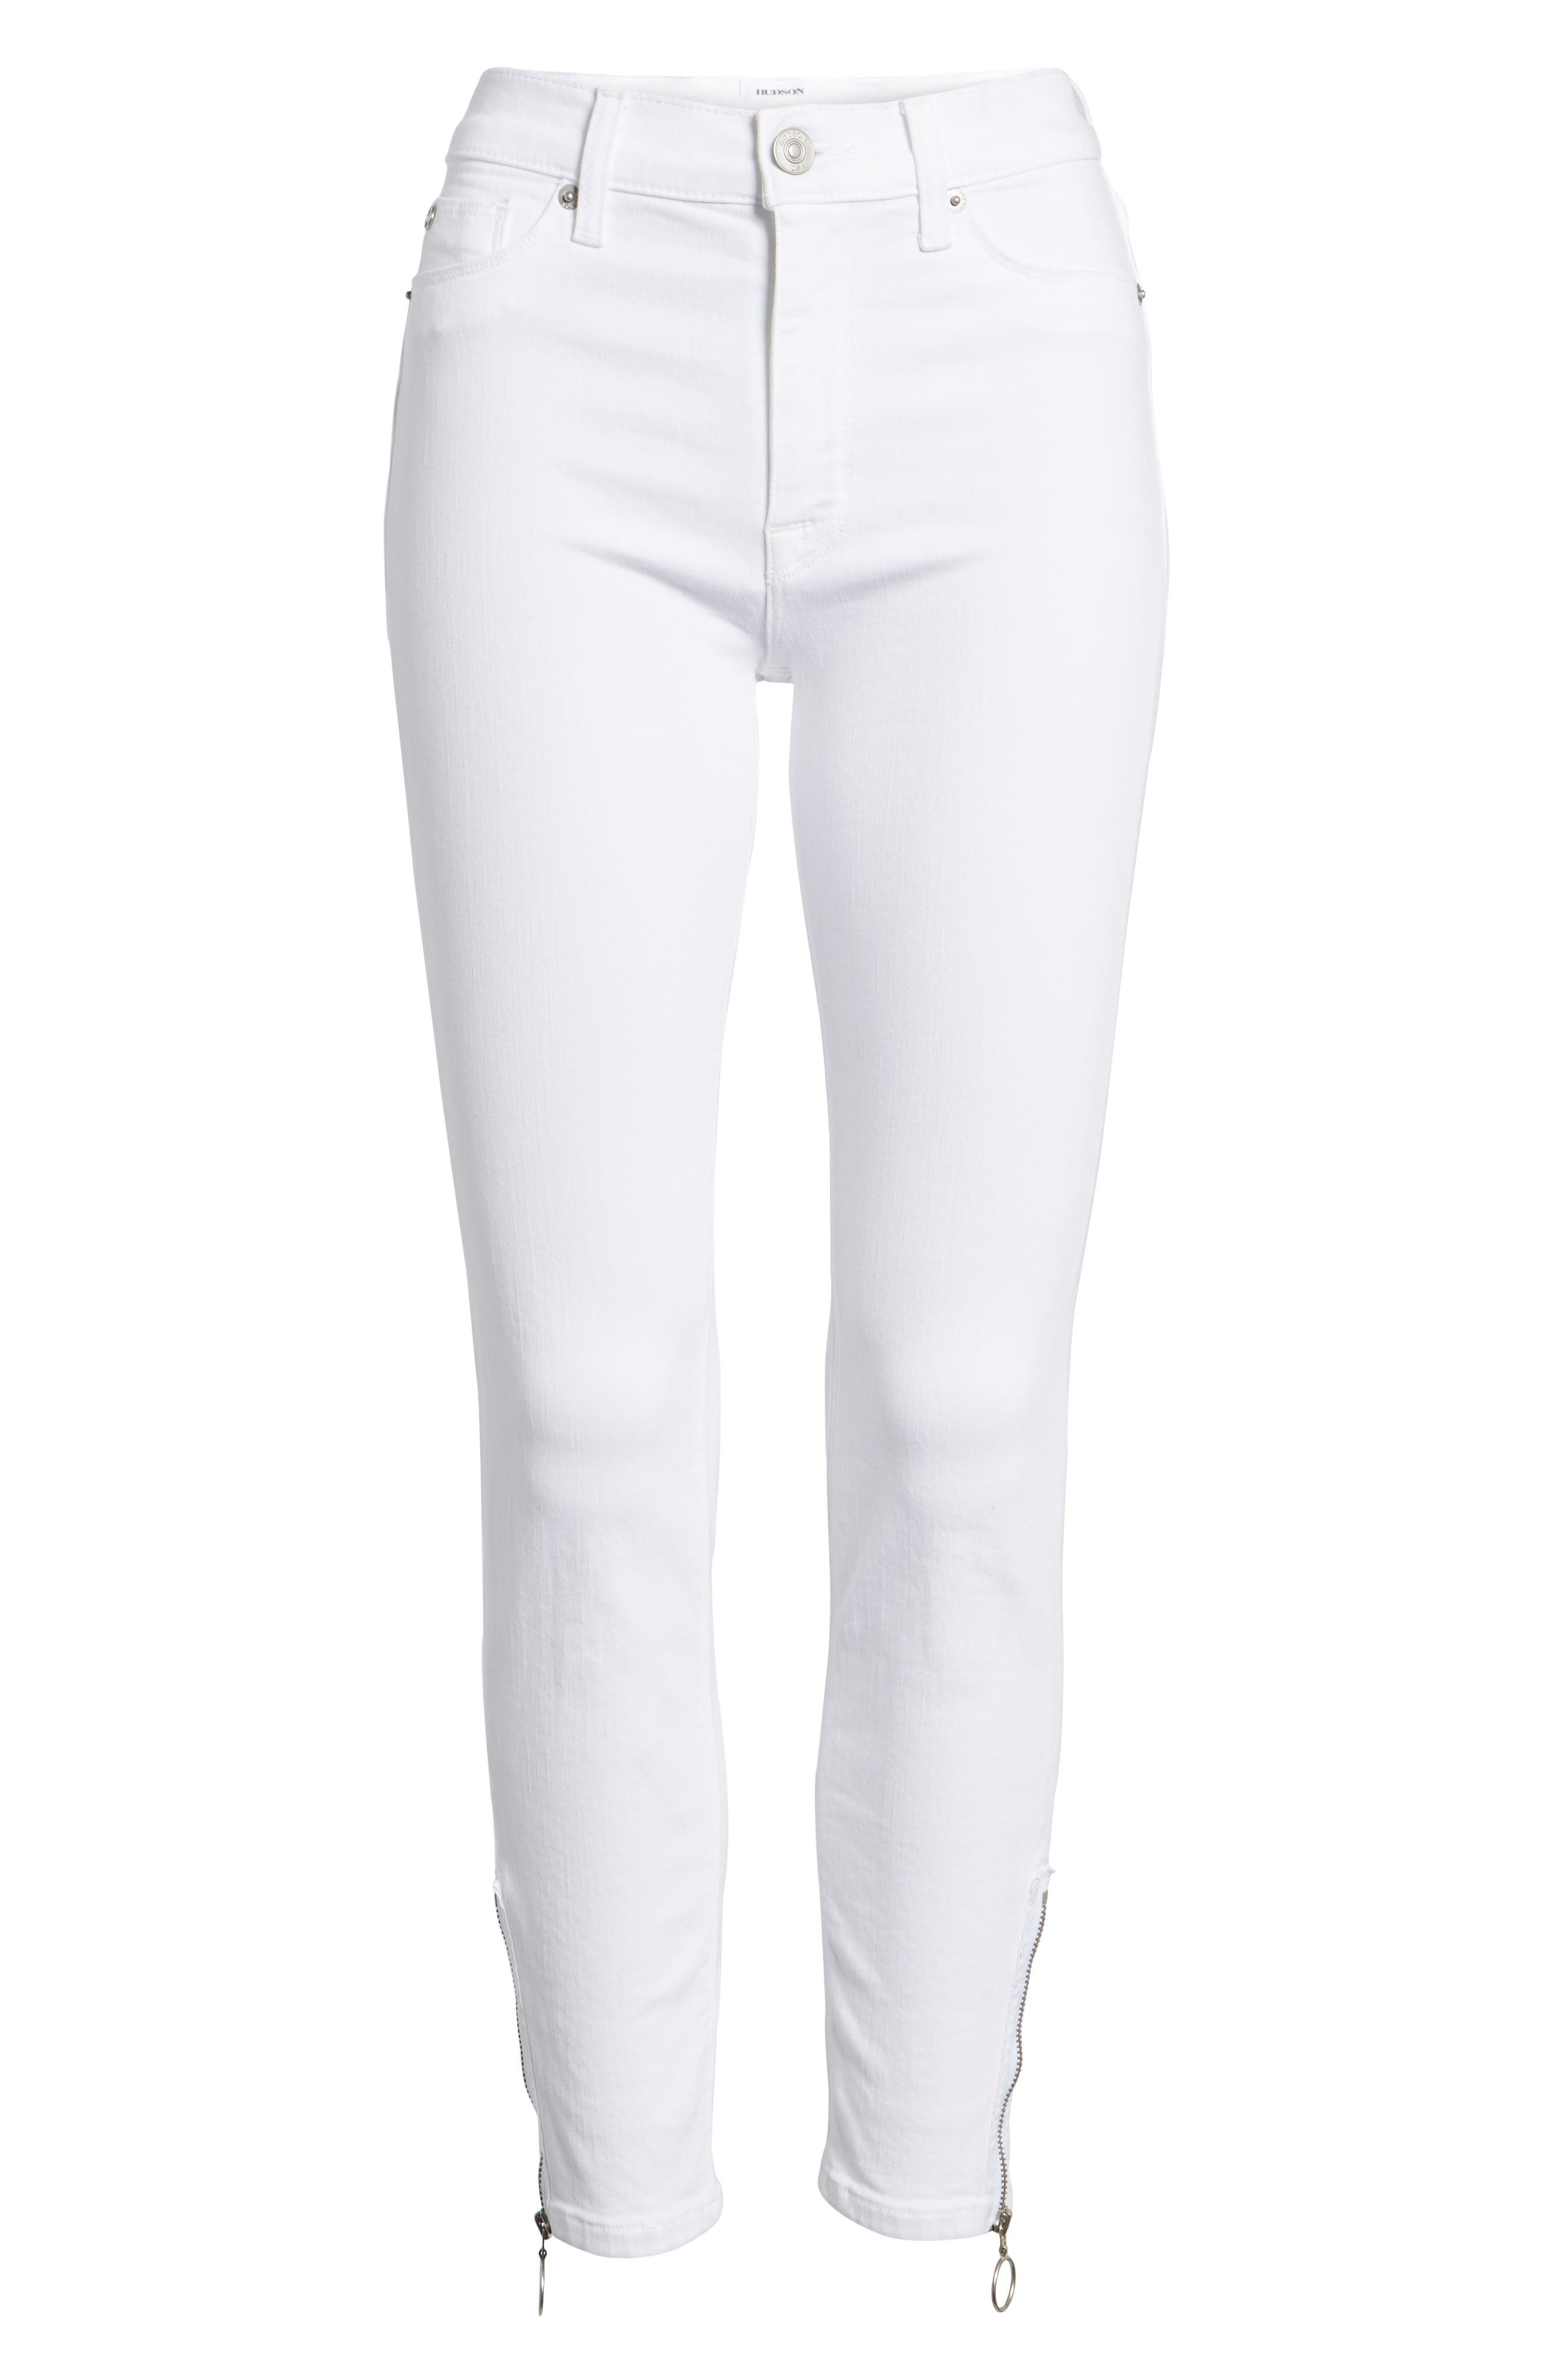 Barbara High Waist Ankle Skinny Jeans,                             Alternate thumbnail 6, color,                             Optical White